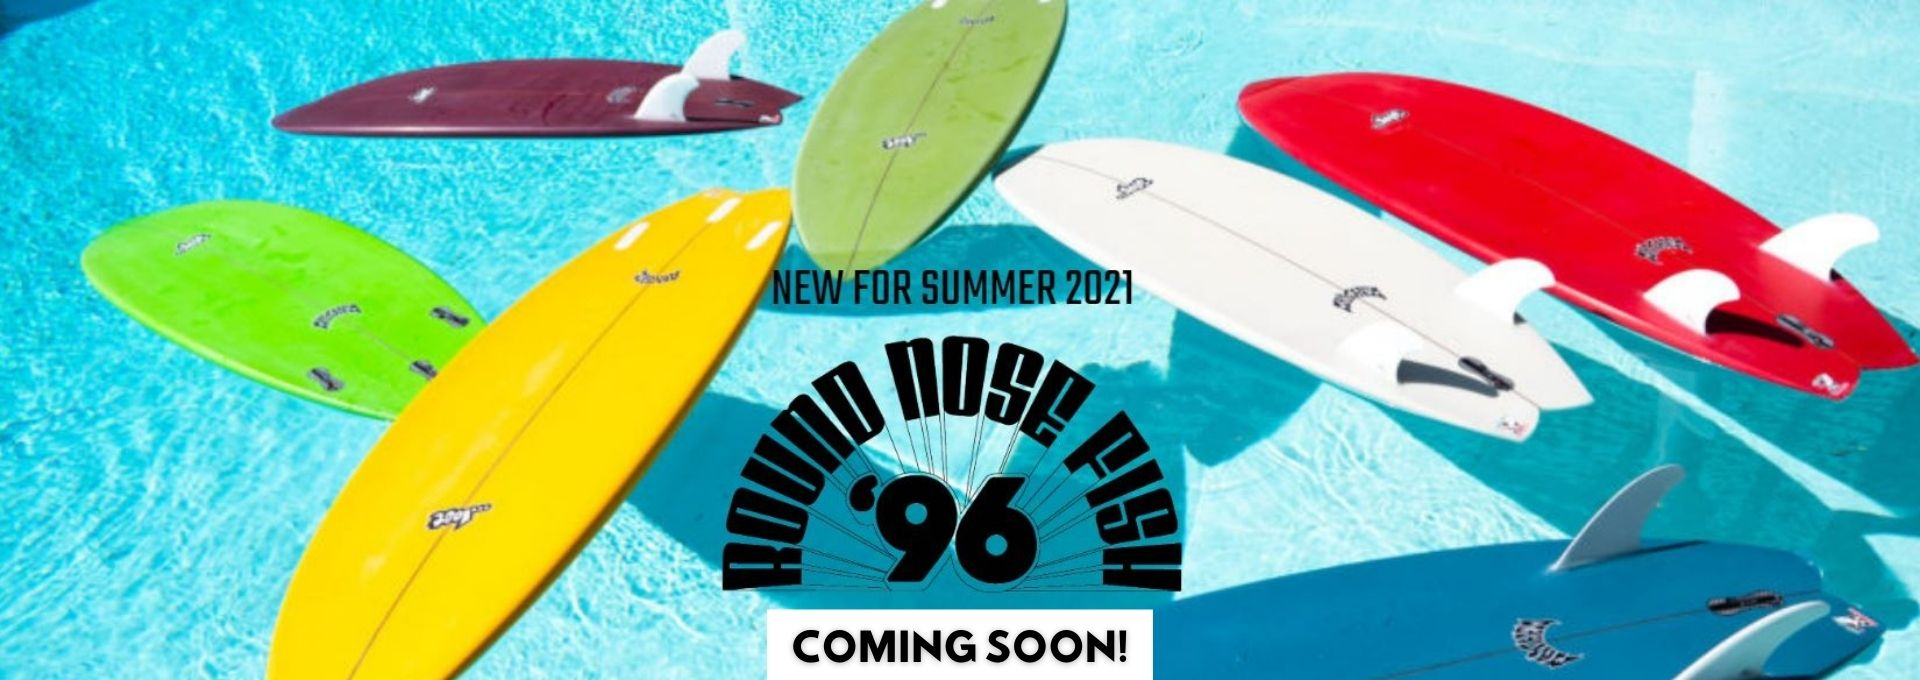 LOST RNF 96 SURFBOARDS